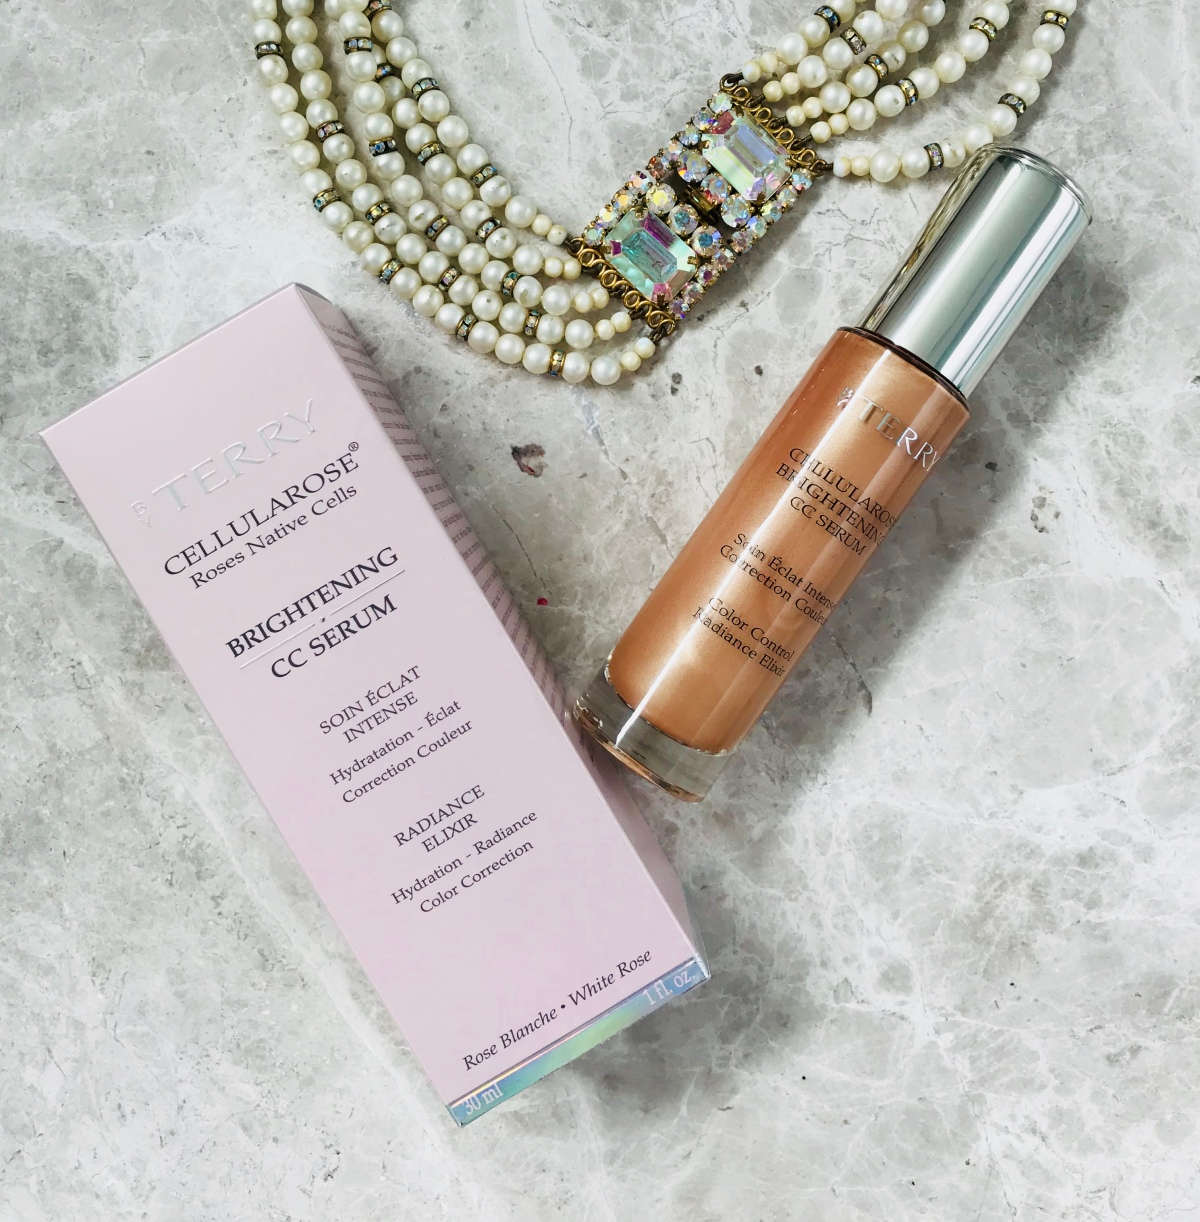 By Terry Cellularose Brightening CC Serum and Beauty Pie Great Skin Foundation ….